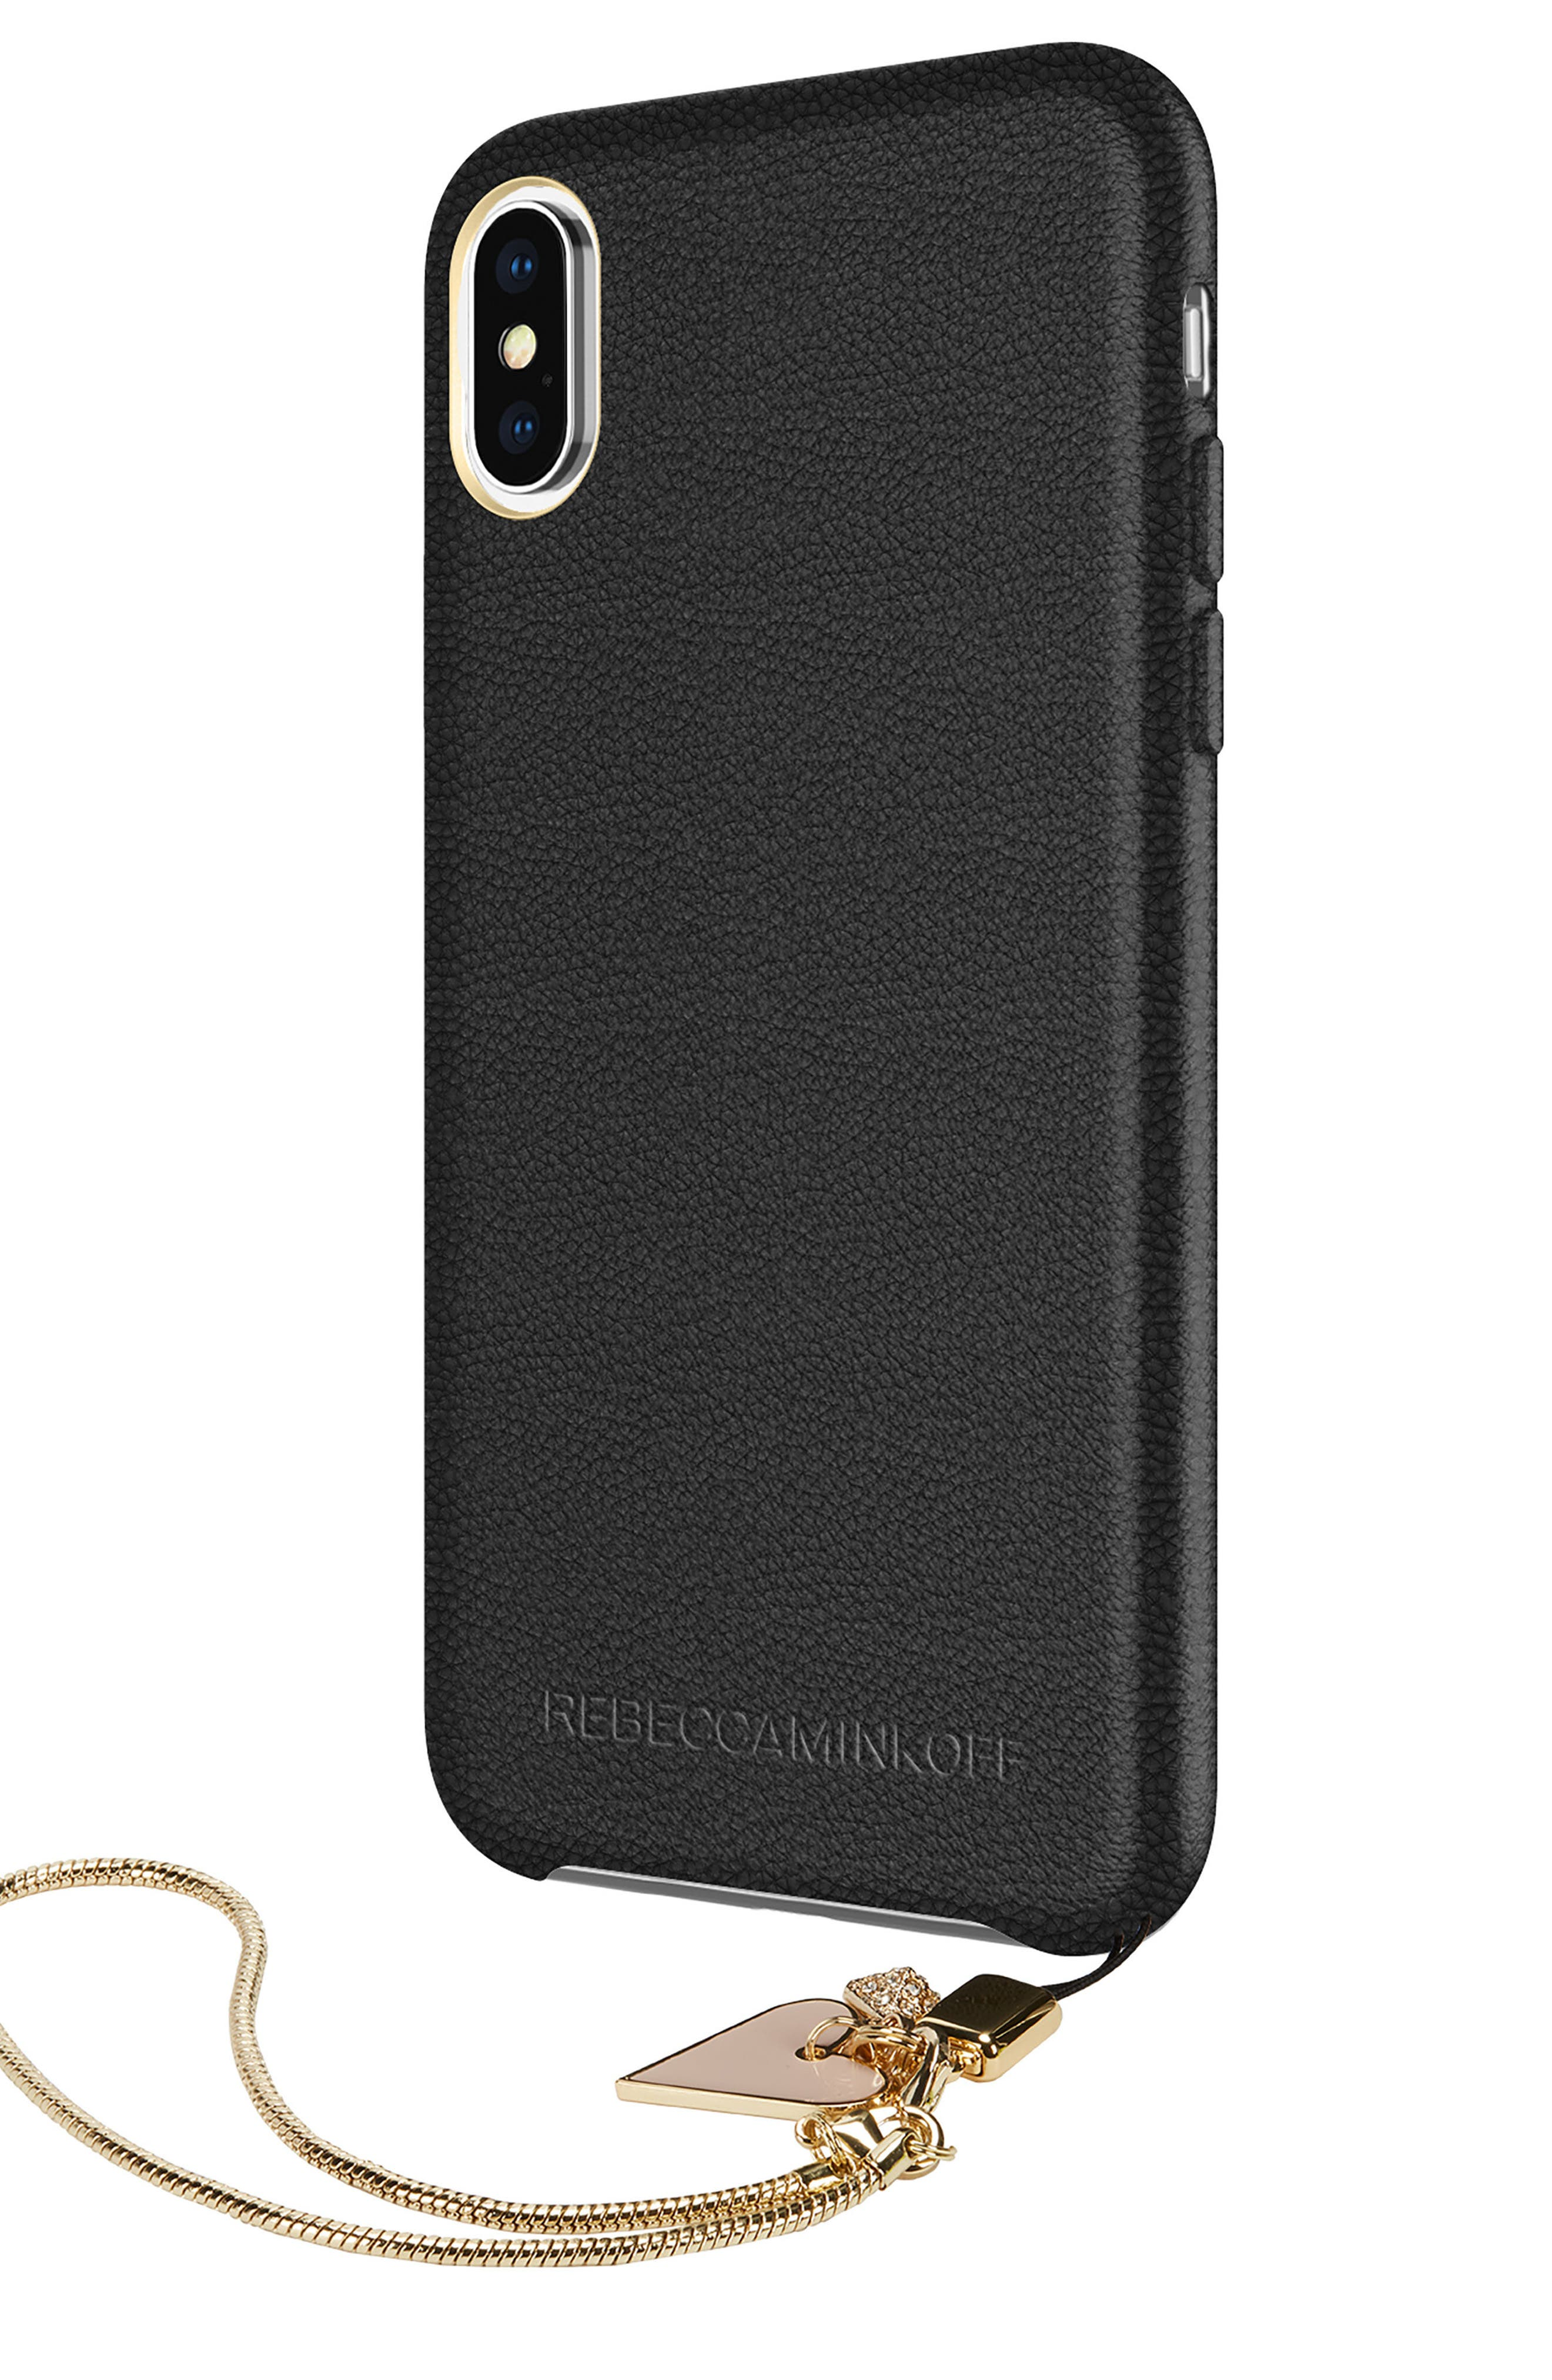 Leather iPhone X Wristlet Case with Charms,                             Alternate thumbnail 2, color,                             001